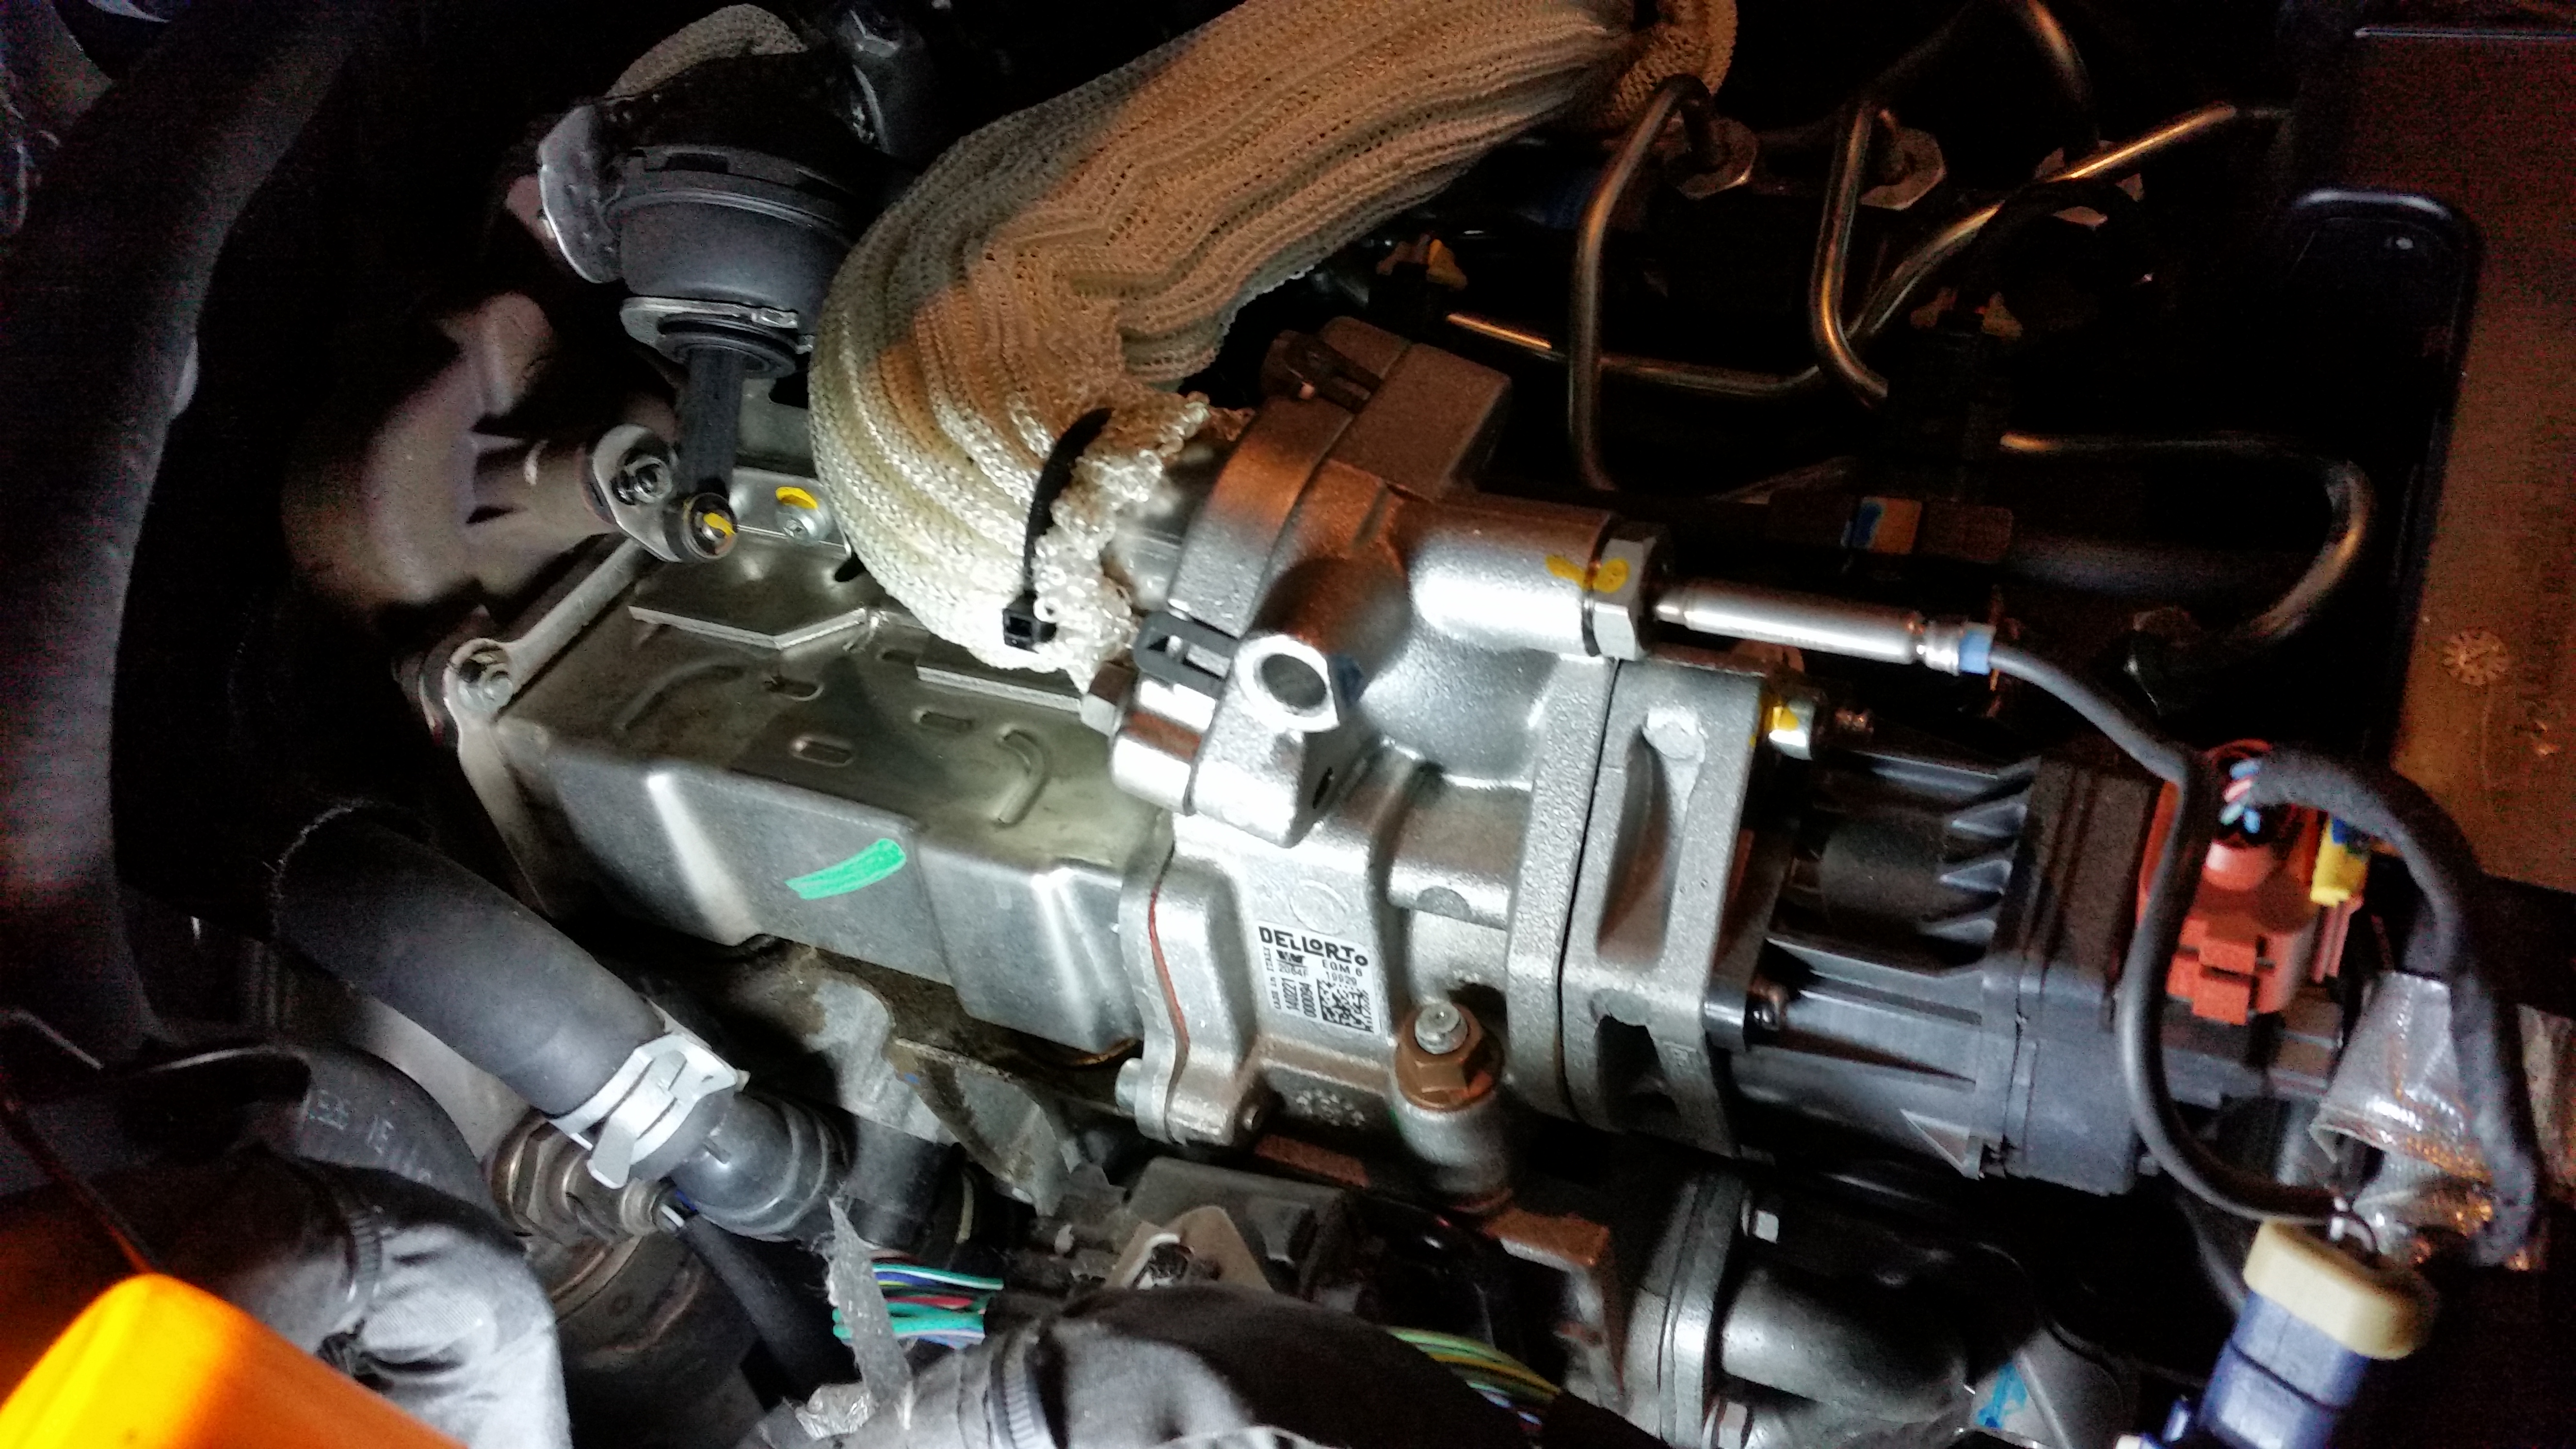 Braided Install Samller in addition Dodge Nitro in addition  further Egr Valve Location Series Egr Df Cdd F Ff Aa A B C C E also Midwest Diesel Turbo Upgrade For Ford L Power Stroke. on dodge ram 1500 egr valve location